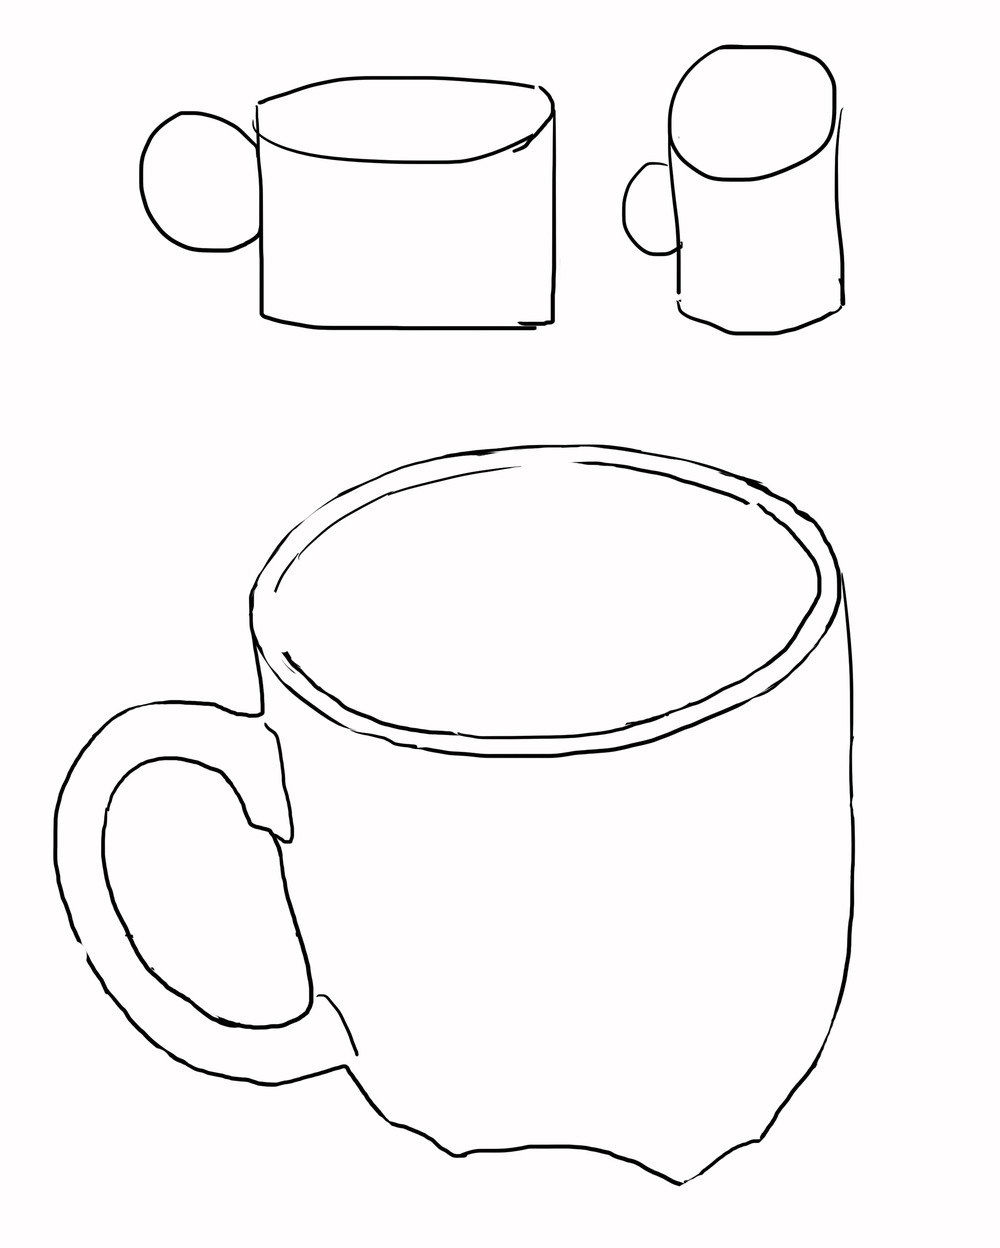 when you try to draw a cup for example you mind find yourself wanting to draw something like the two examples above when you look a real cup